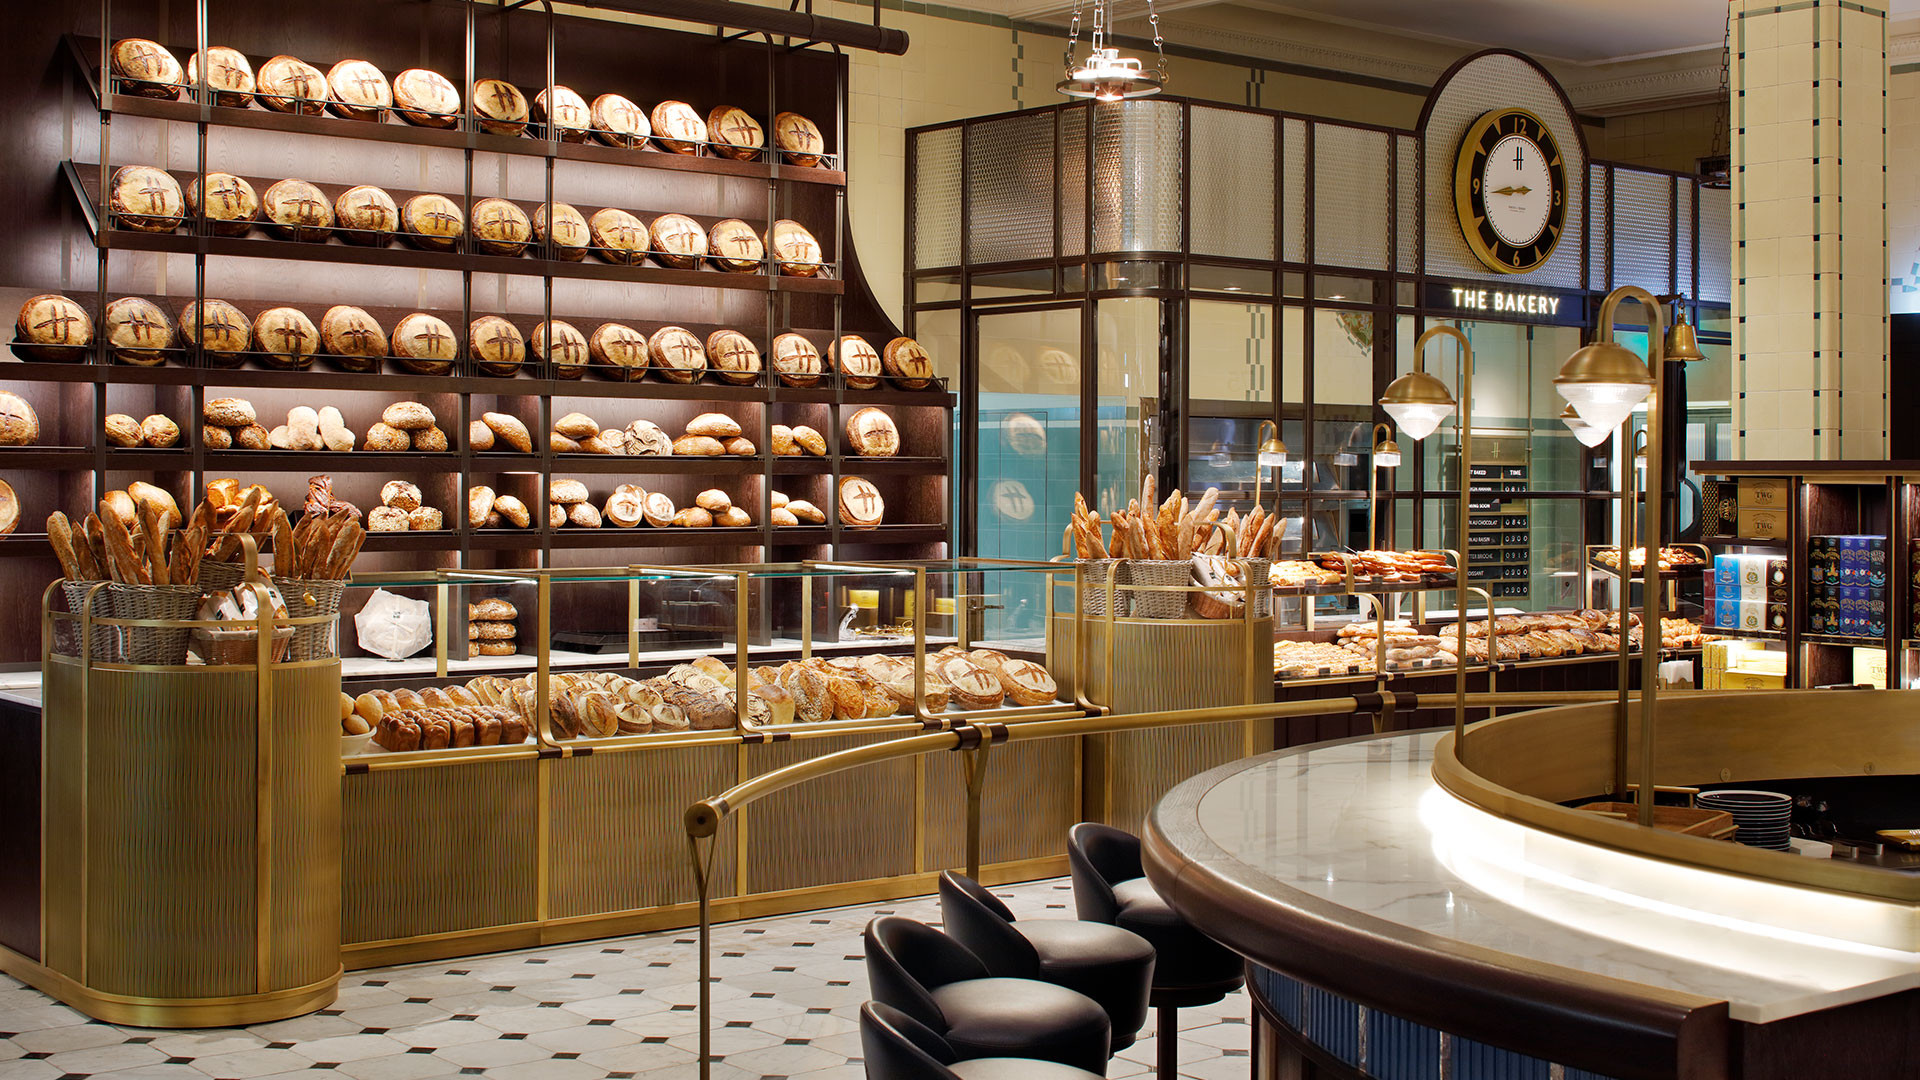 The all-sourdough bakery at Harrods' new Food Hall